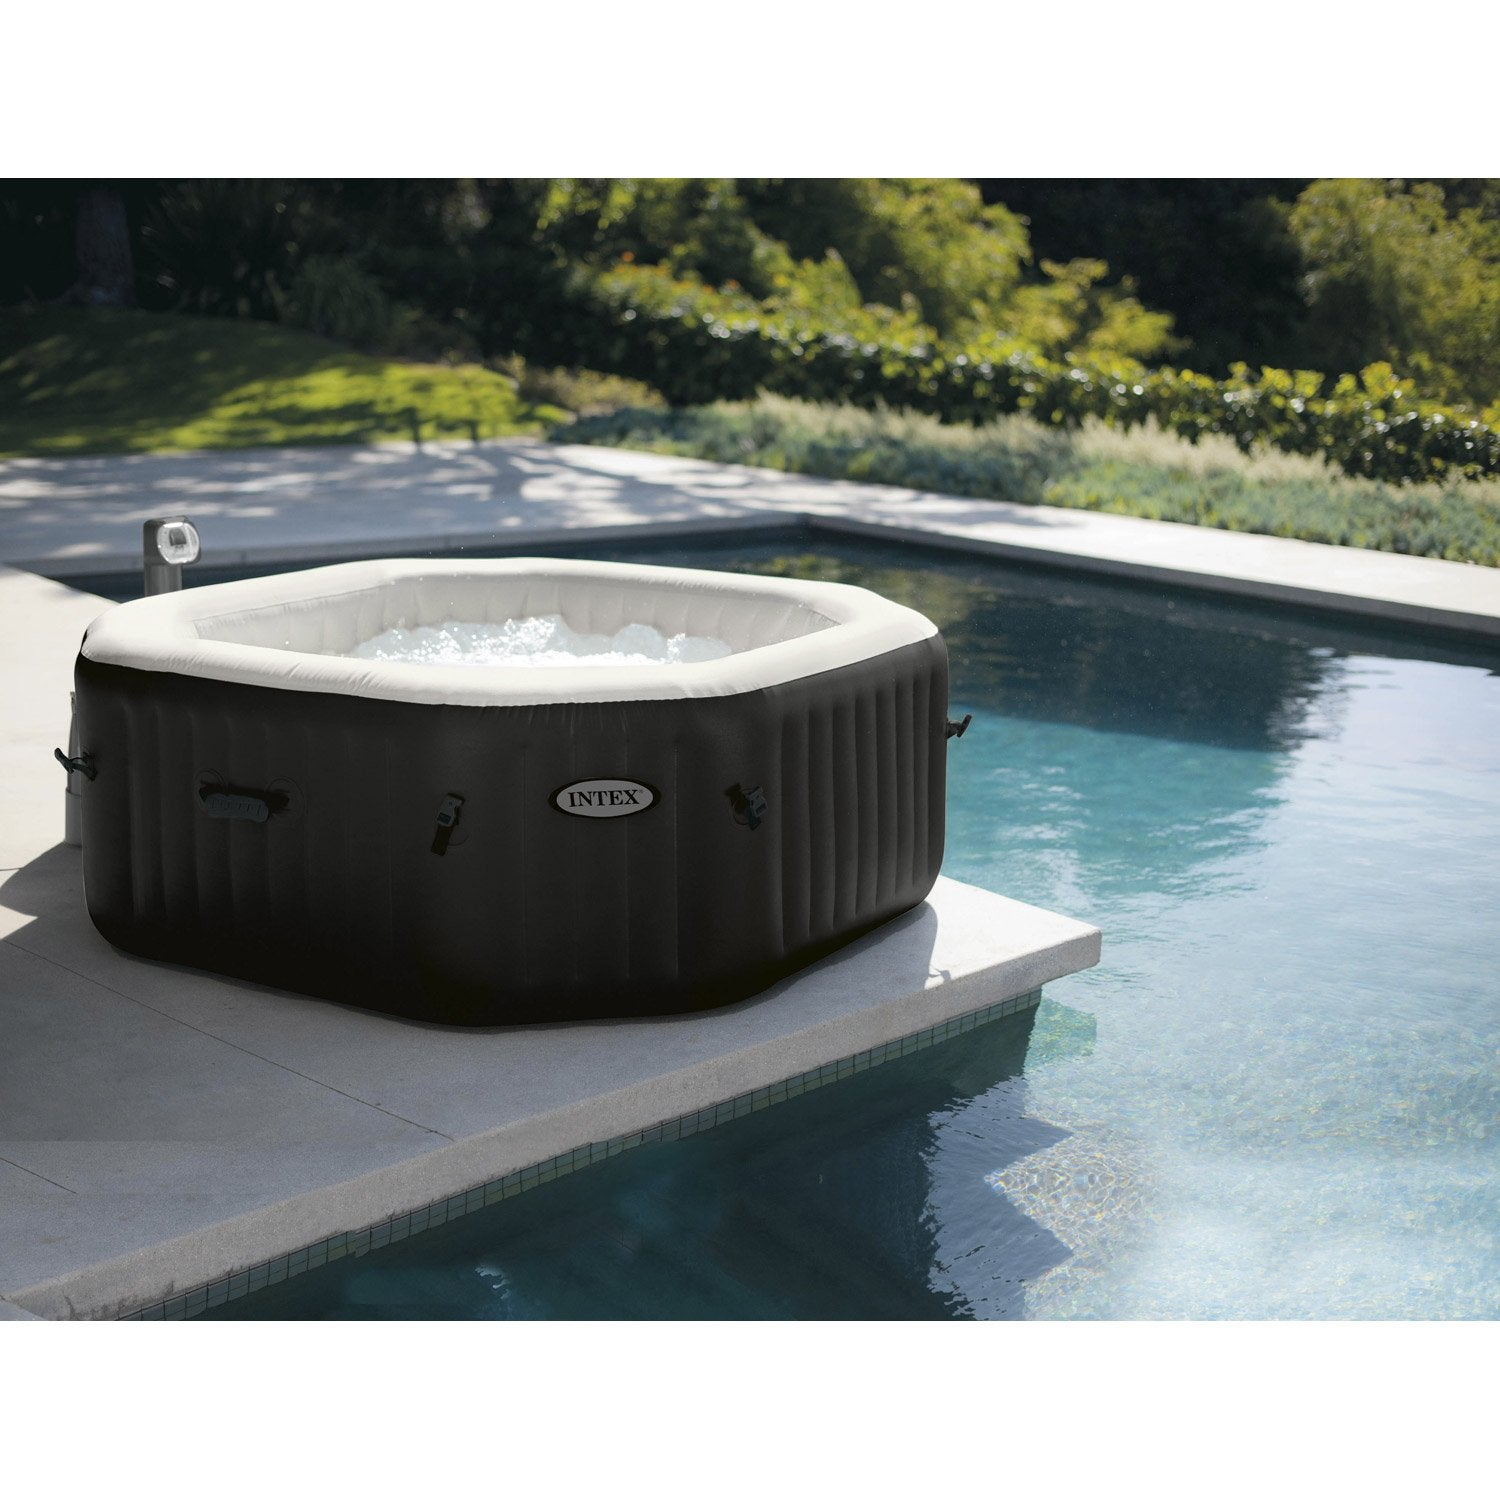 Spa gonflable intex purespa bulles octogonale 6 places for Spa gonflable exterieur